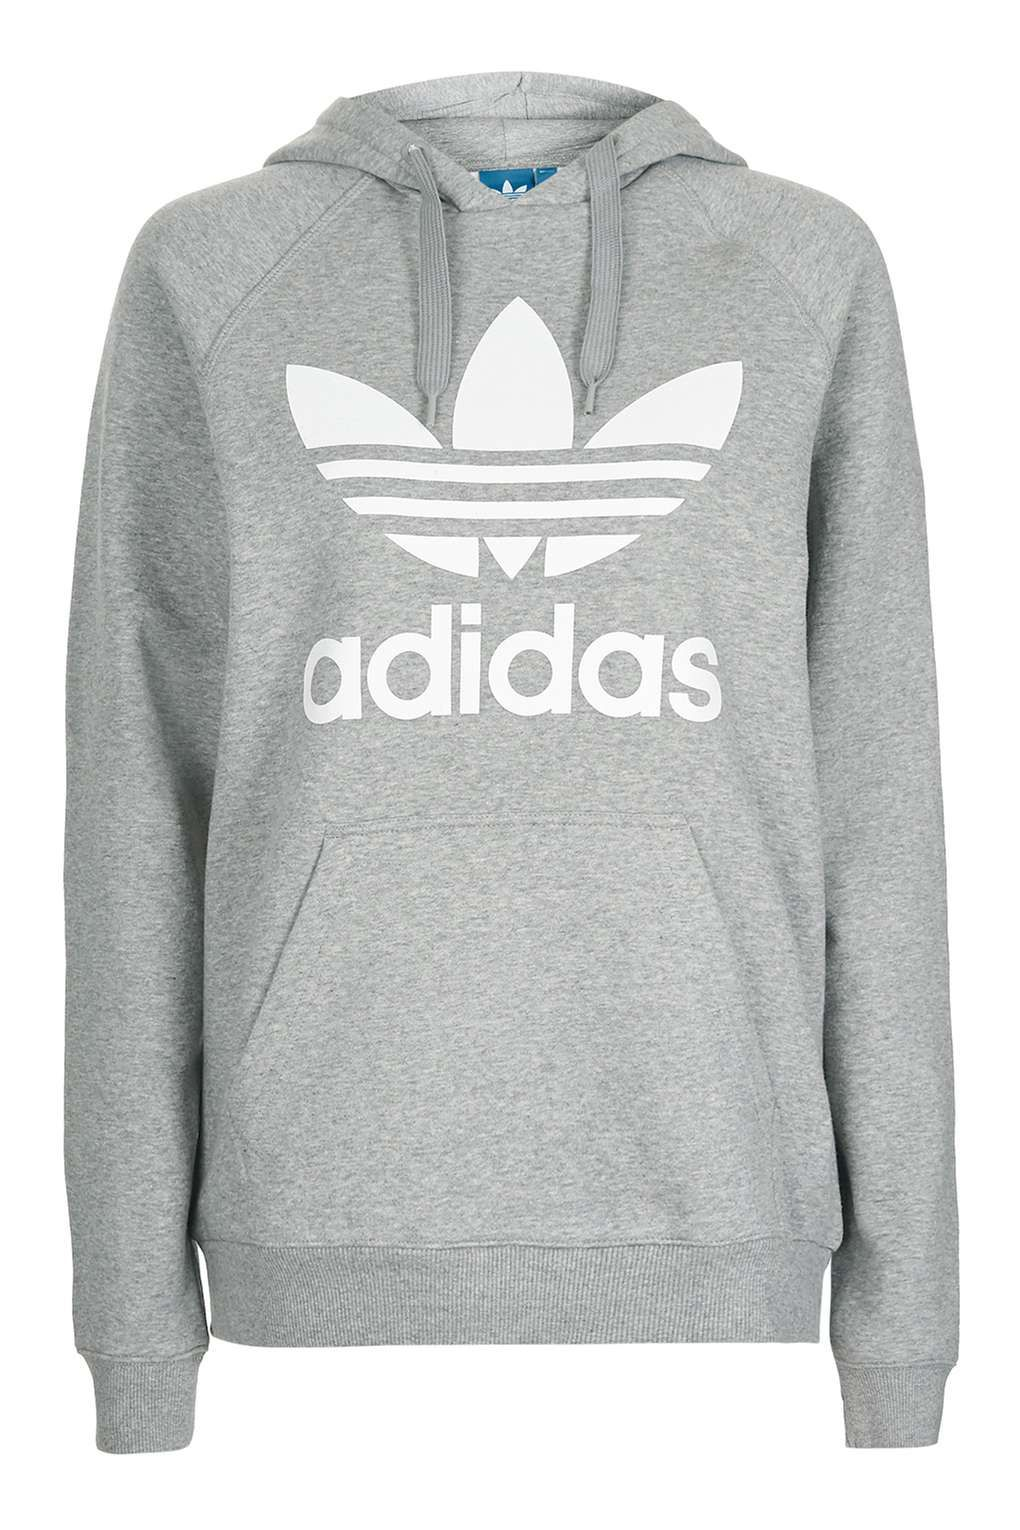 adidas Originals Big Kids Originals Trefoil Hoodie, Yellow